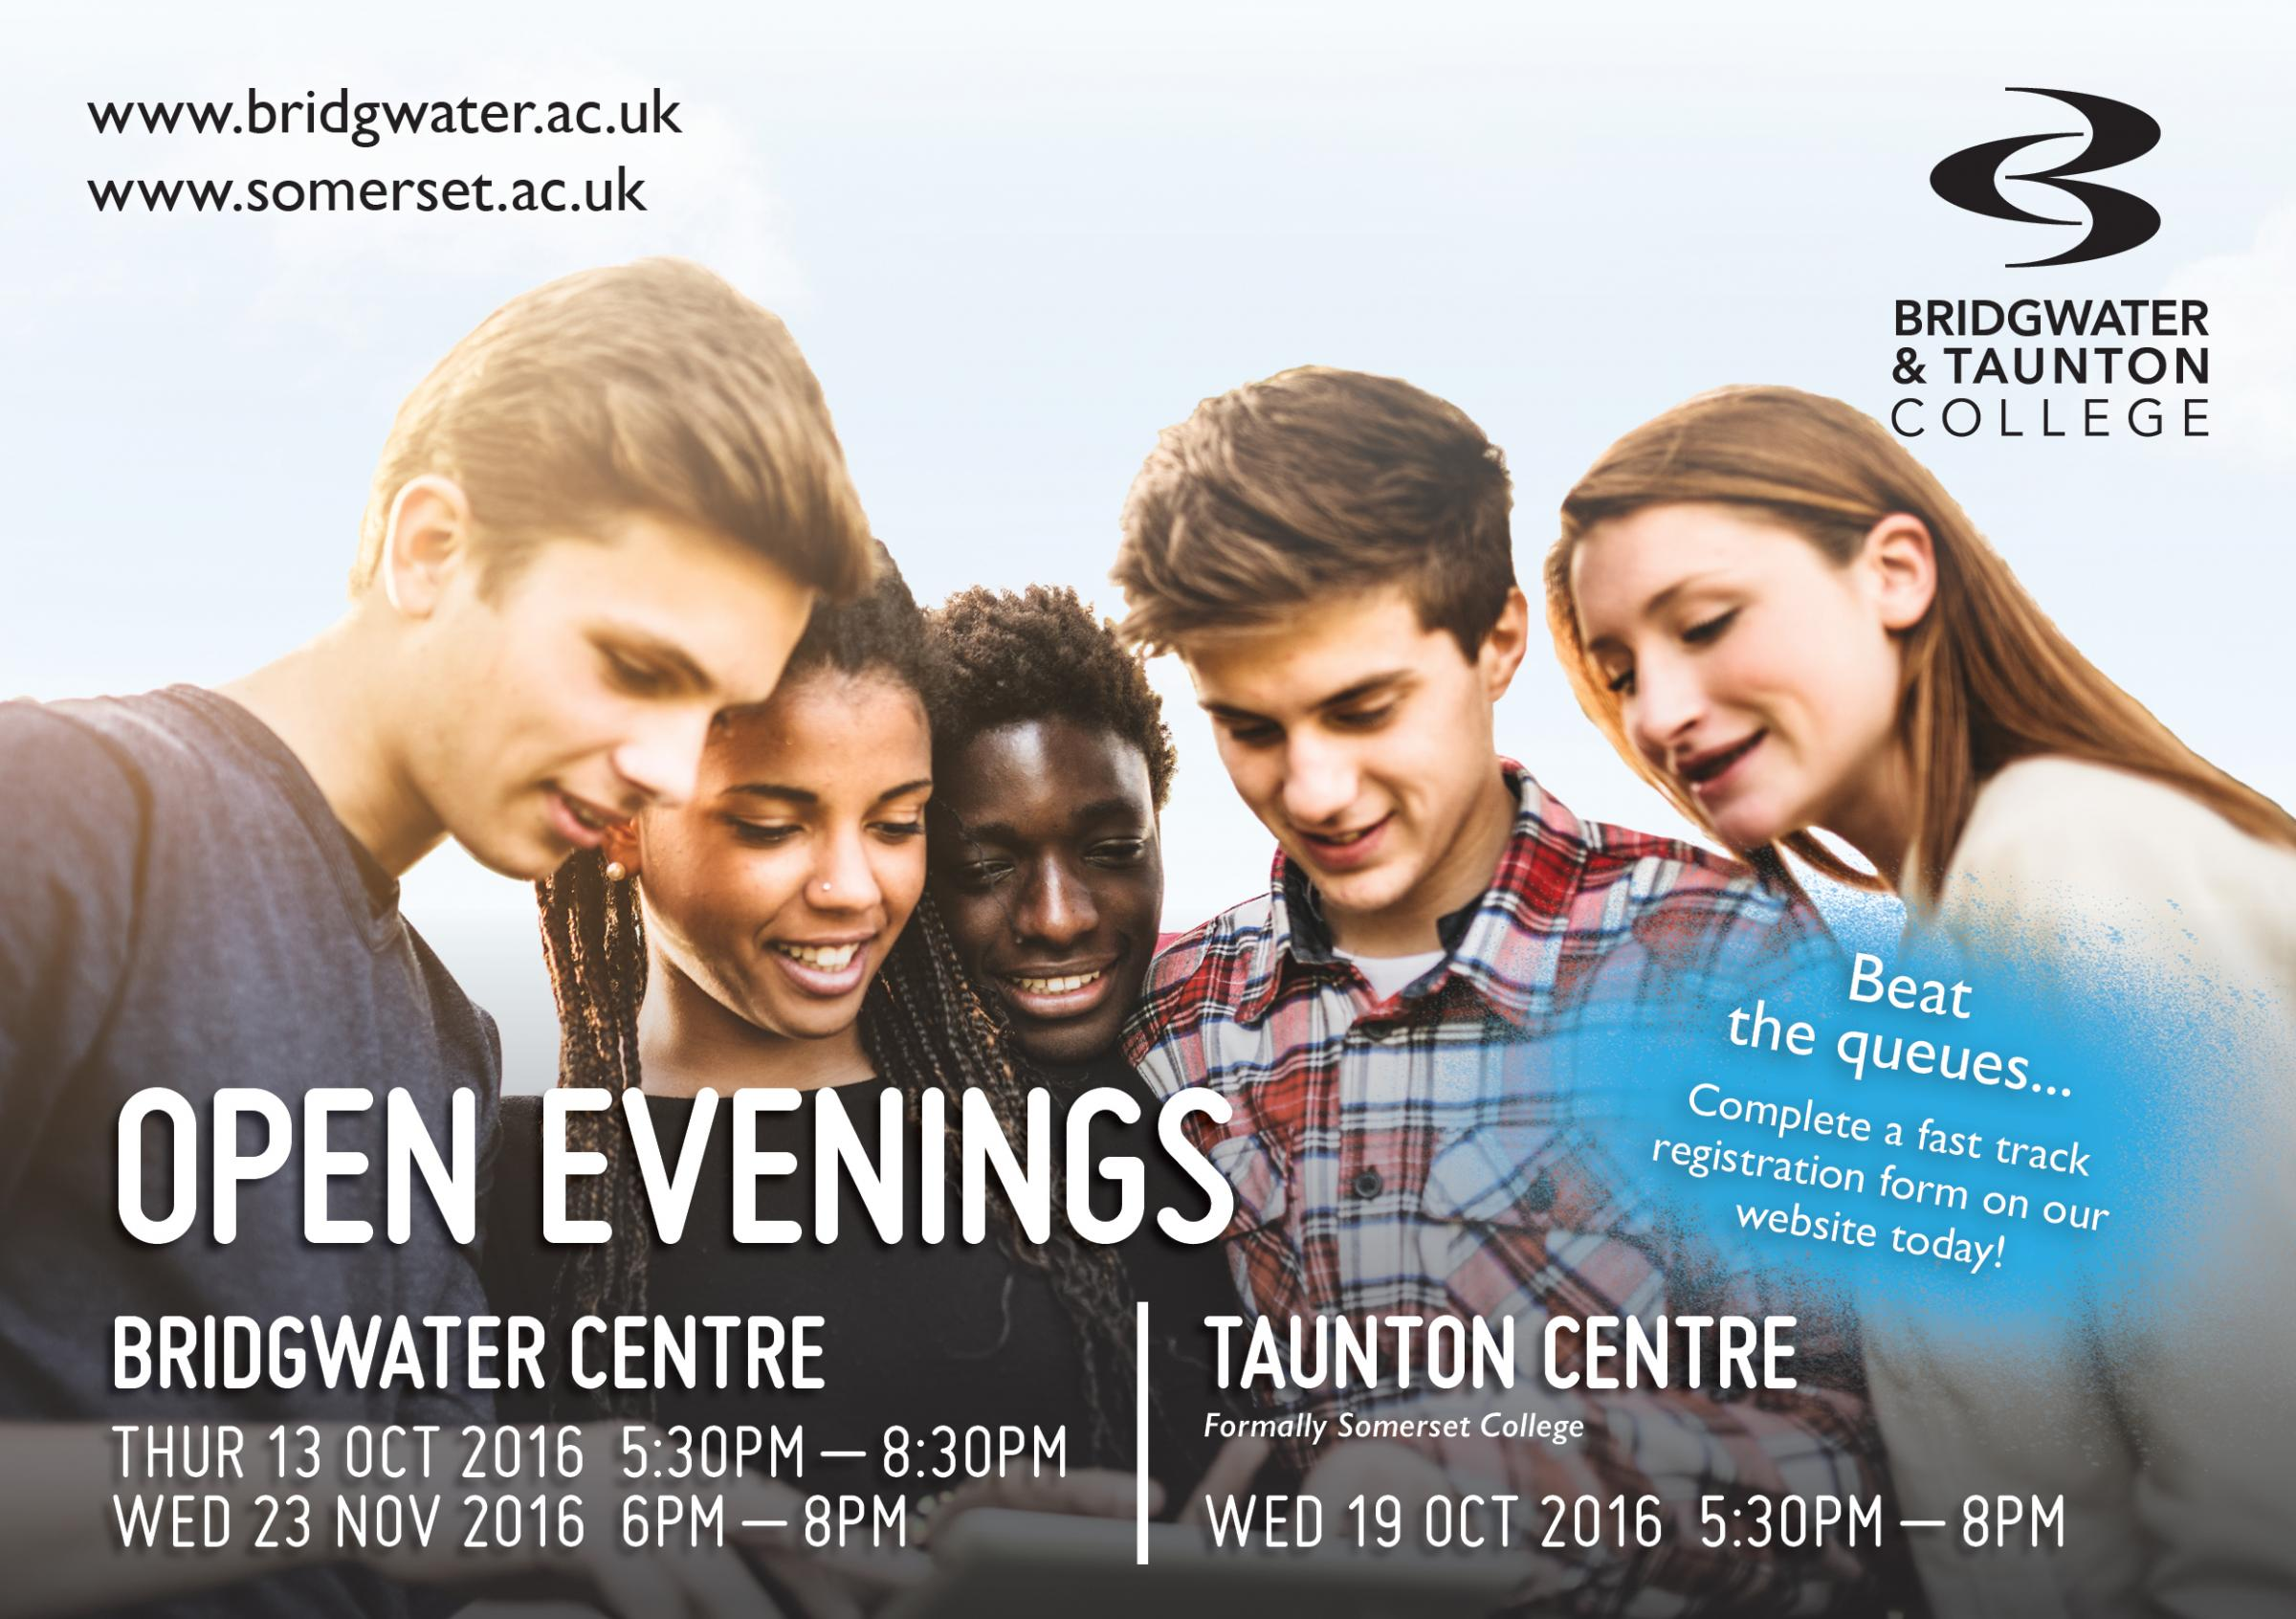 Bridgwater and Taunton College Open Evening